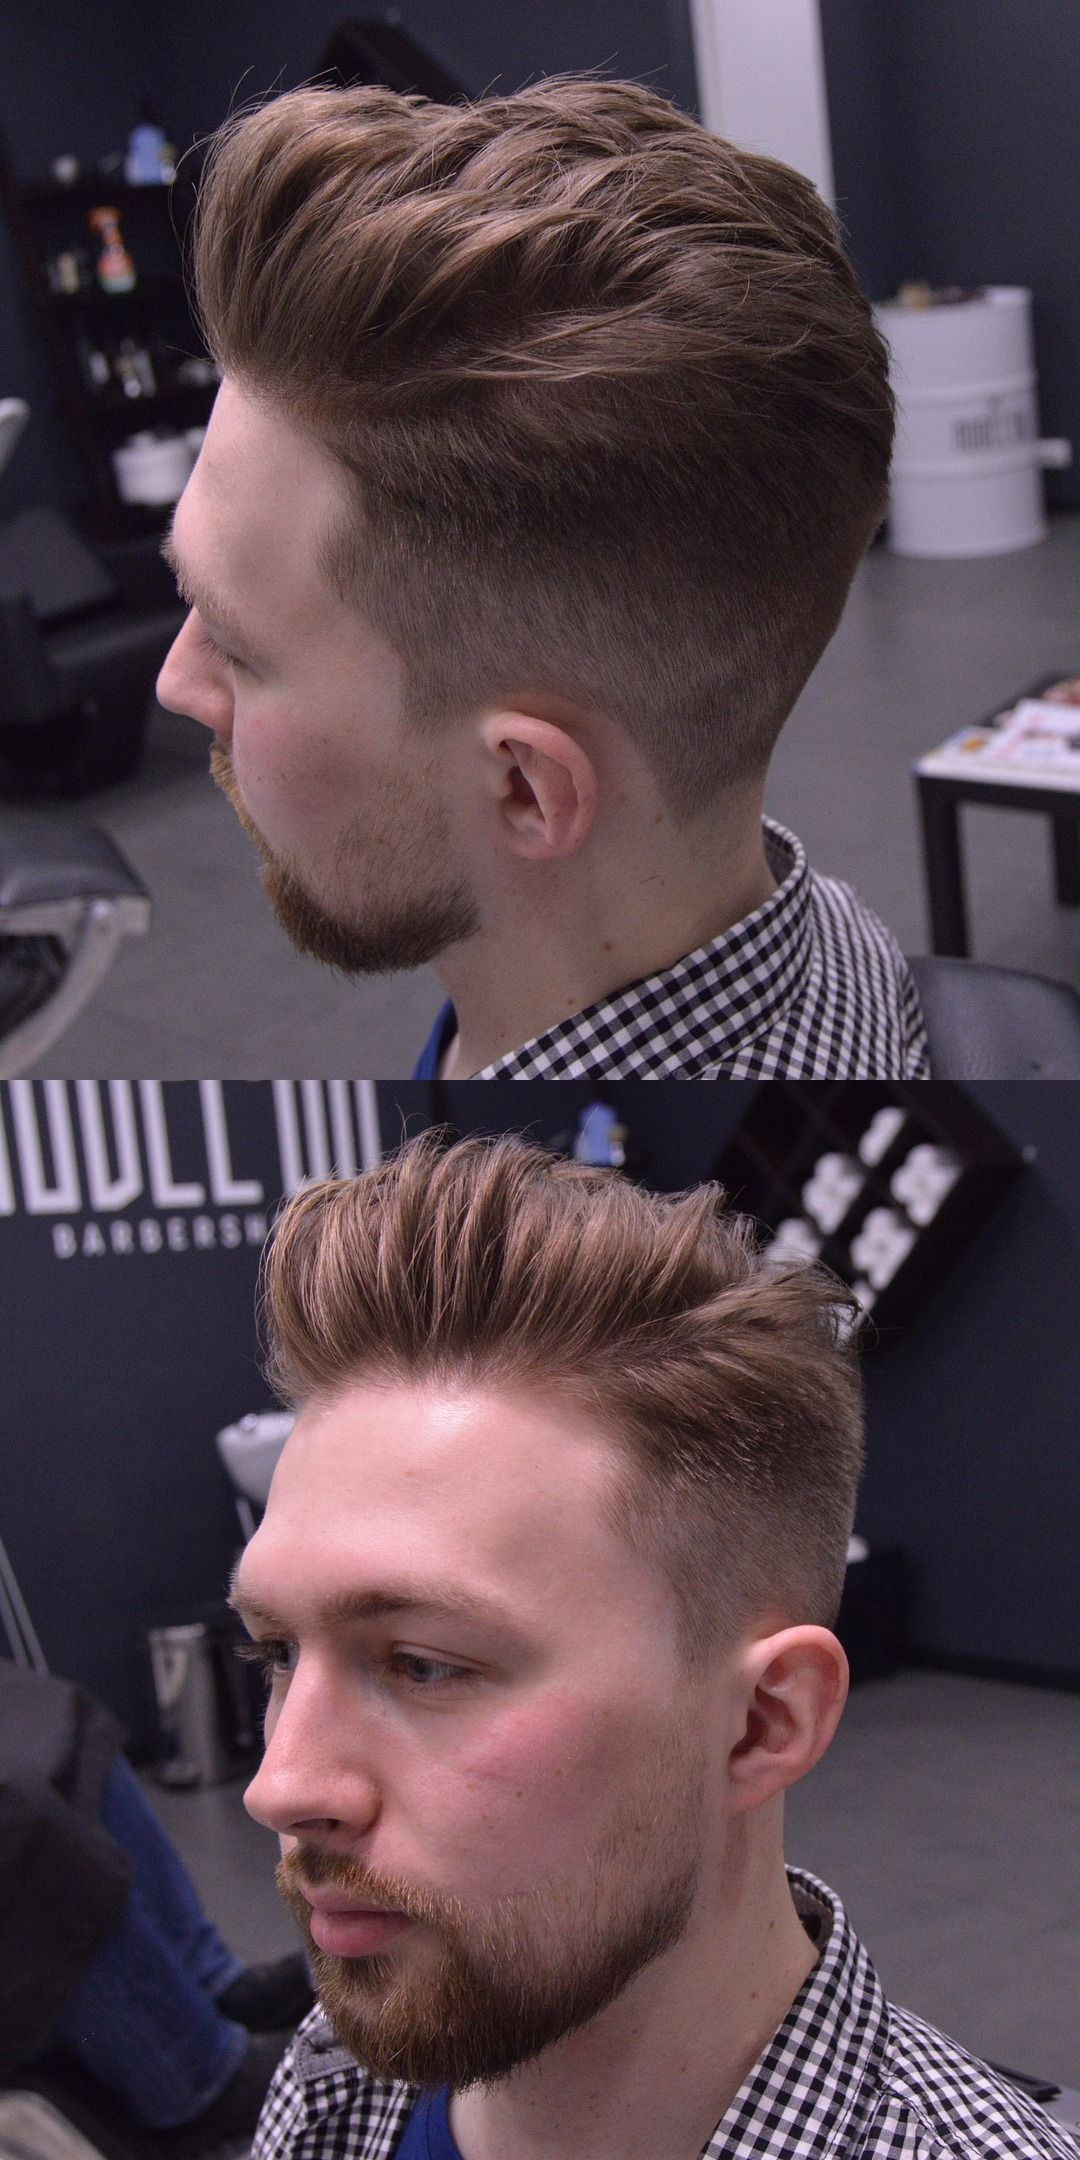 Boy hairstyle back  latest mens slick back hairstyles u haircut ideas  hair did